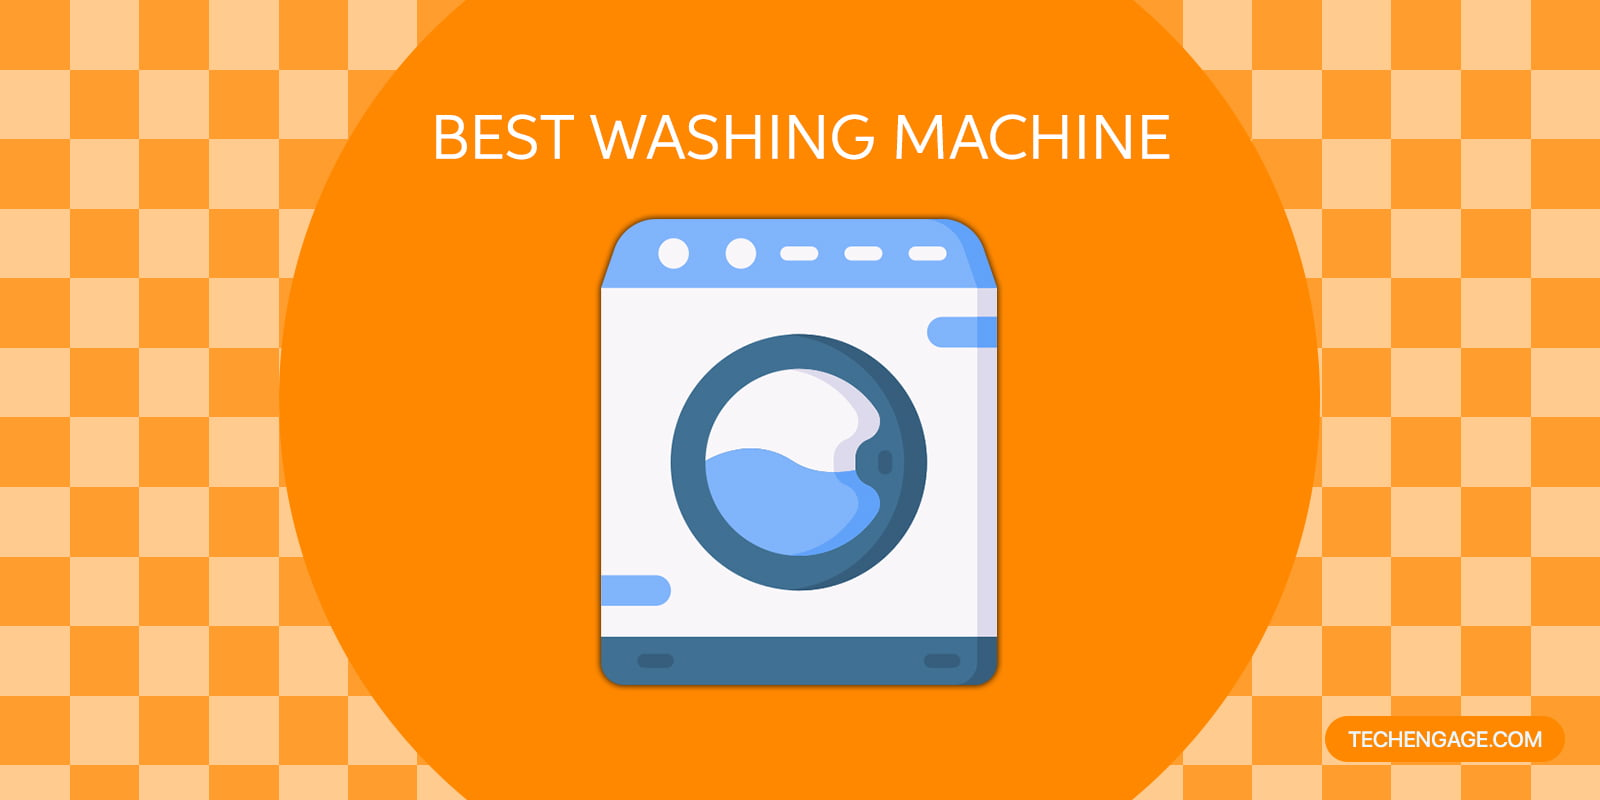 Best rated top loading washing machines in 2021